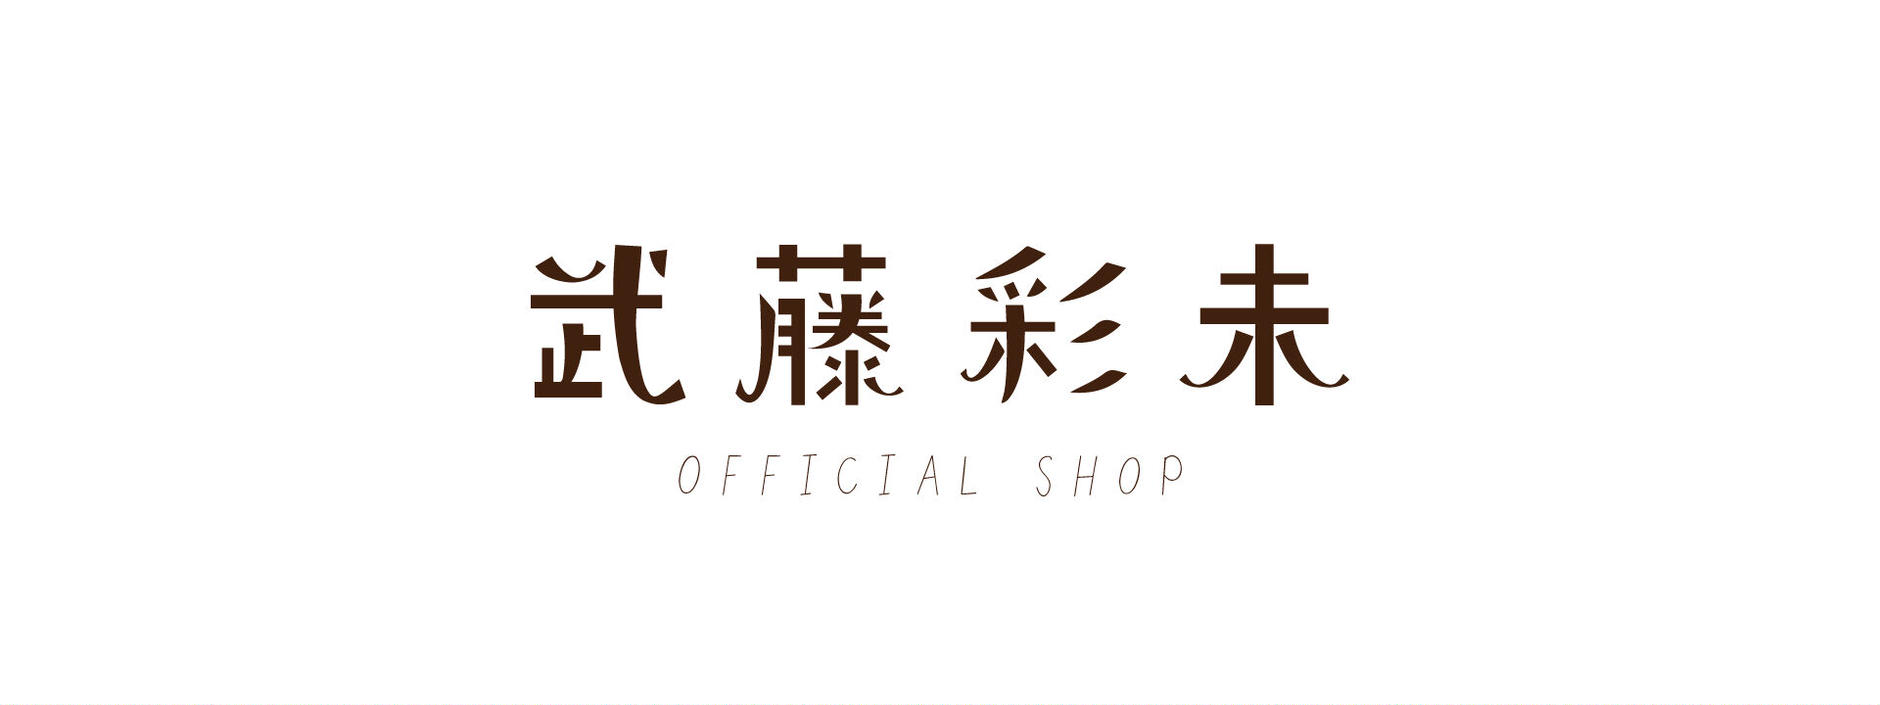 武藤彩未 official shop